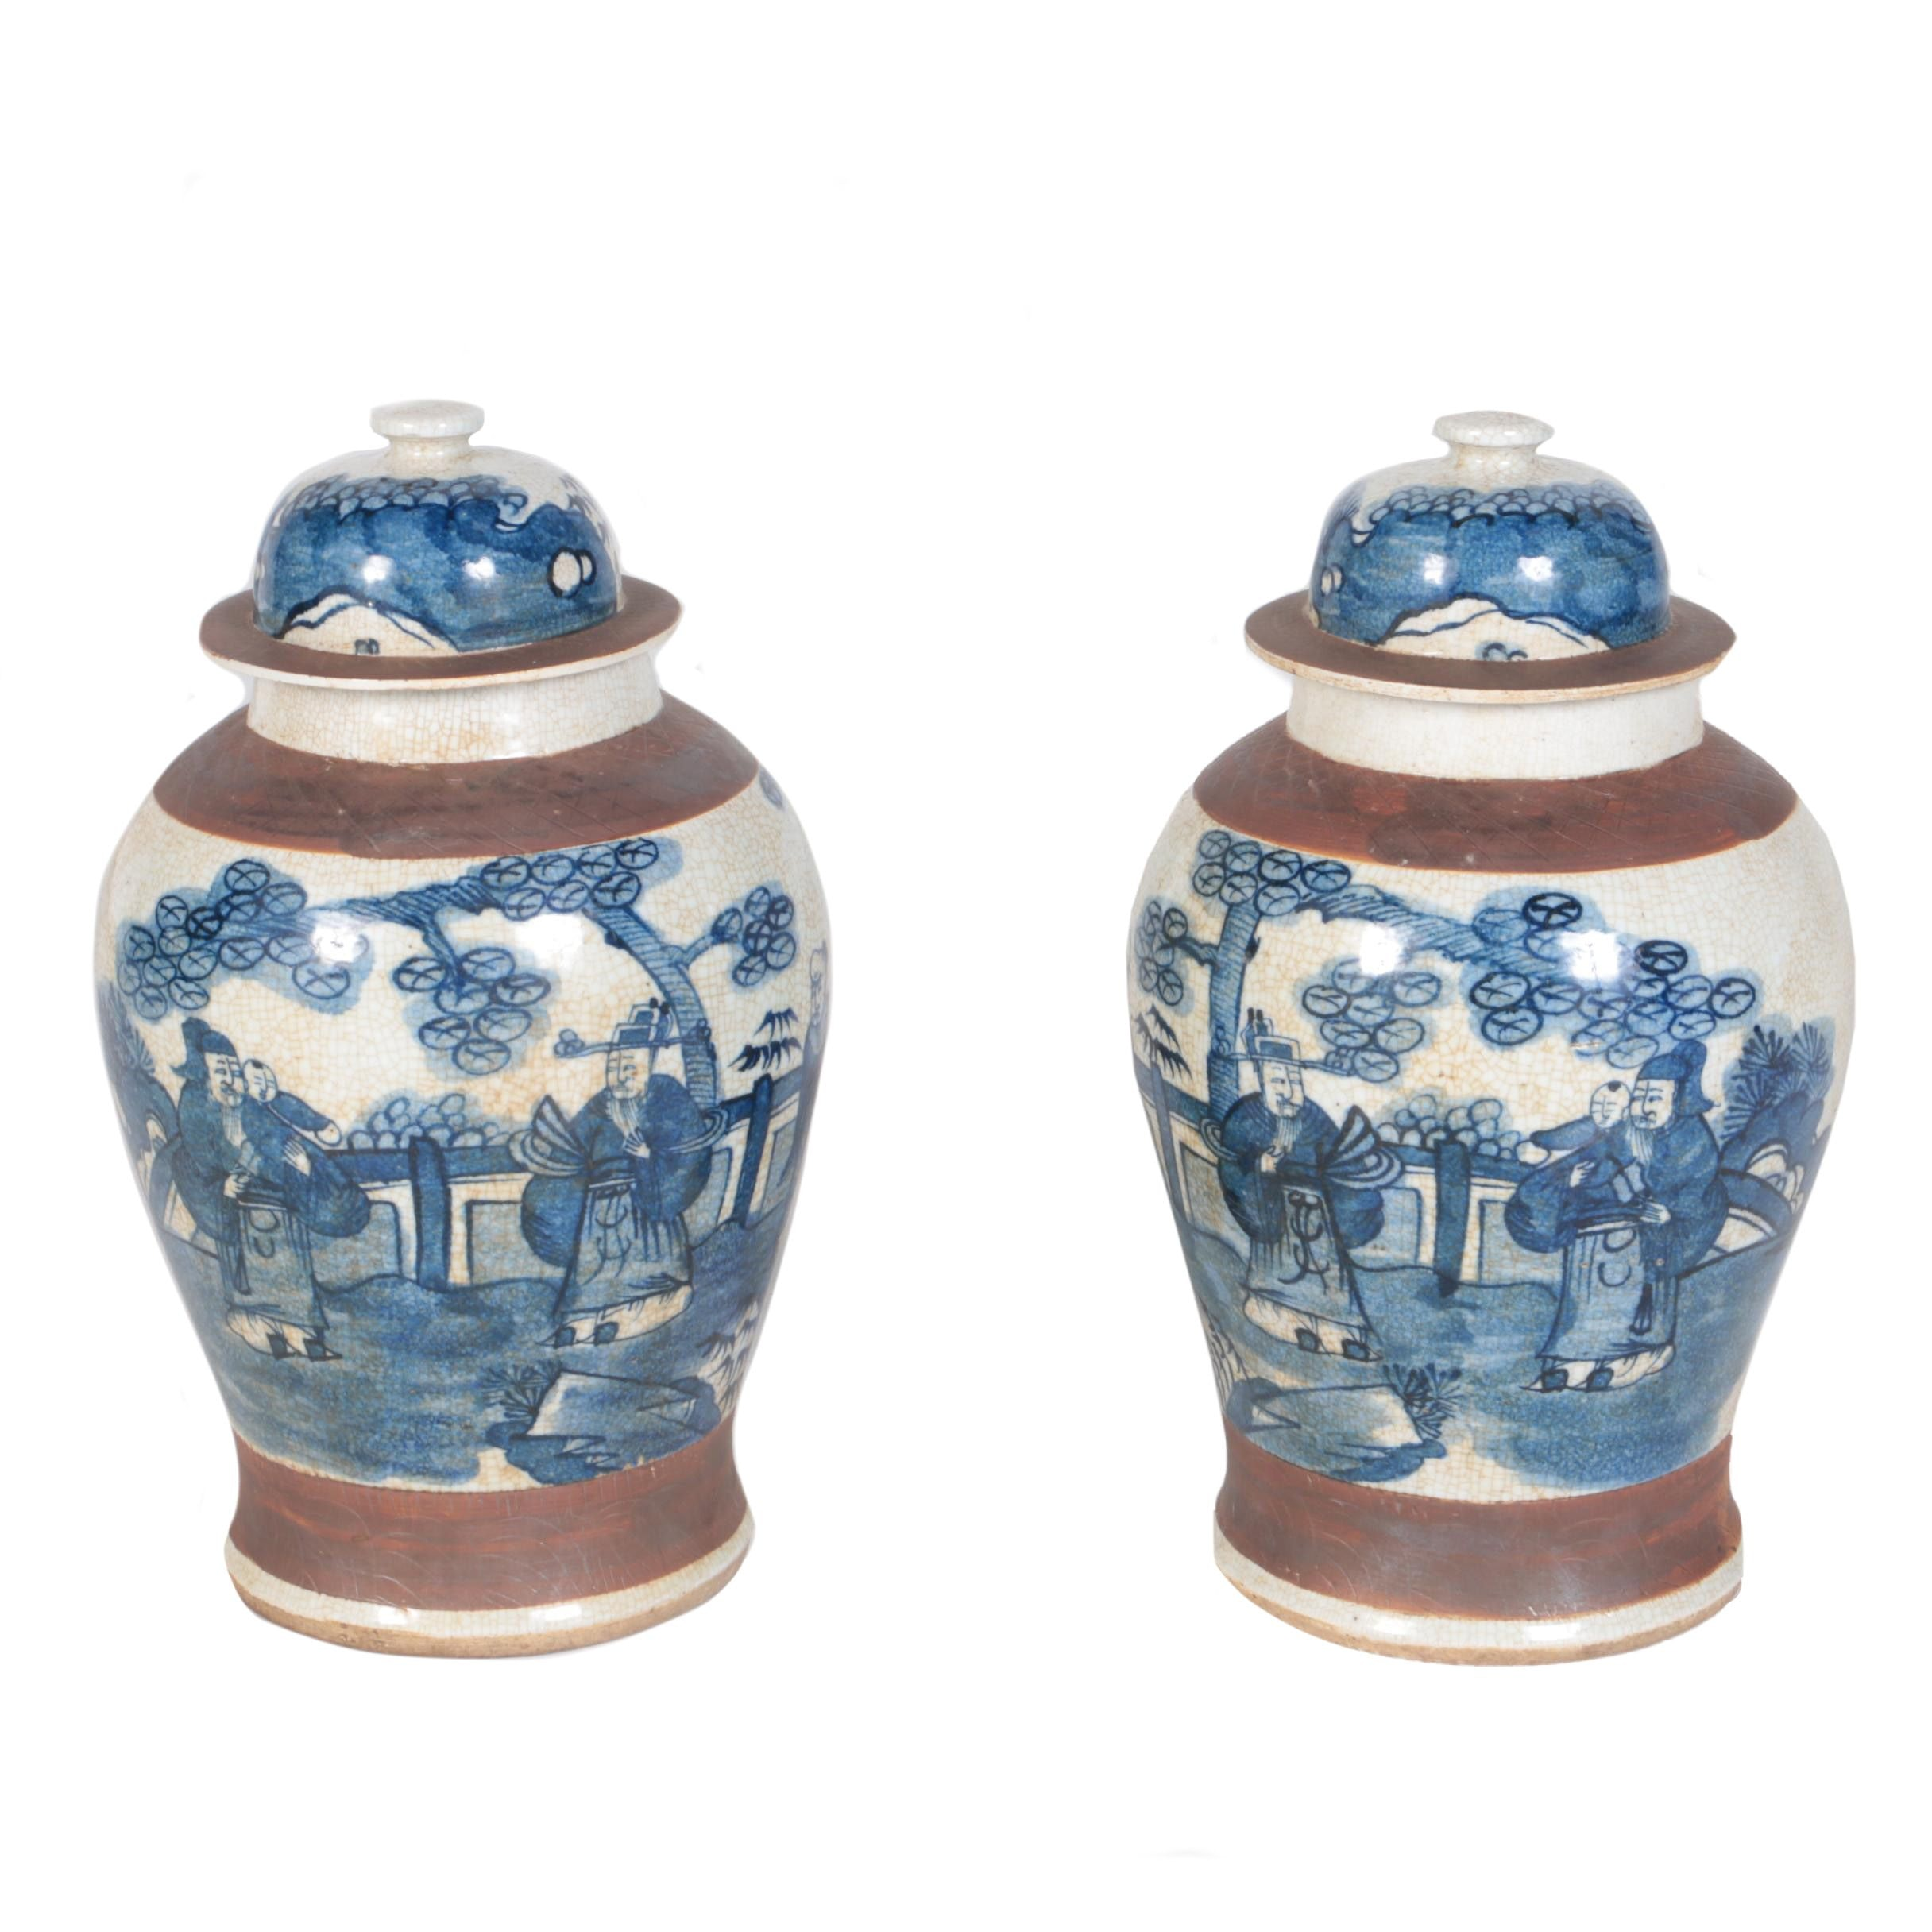 Chinese Ceramic Lidded Jars with Antiqued Finish